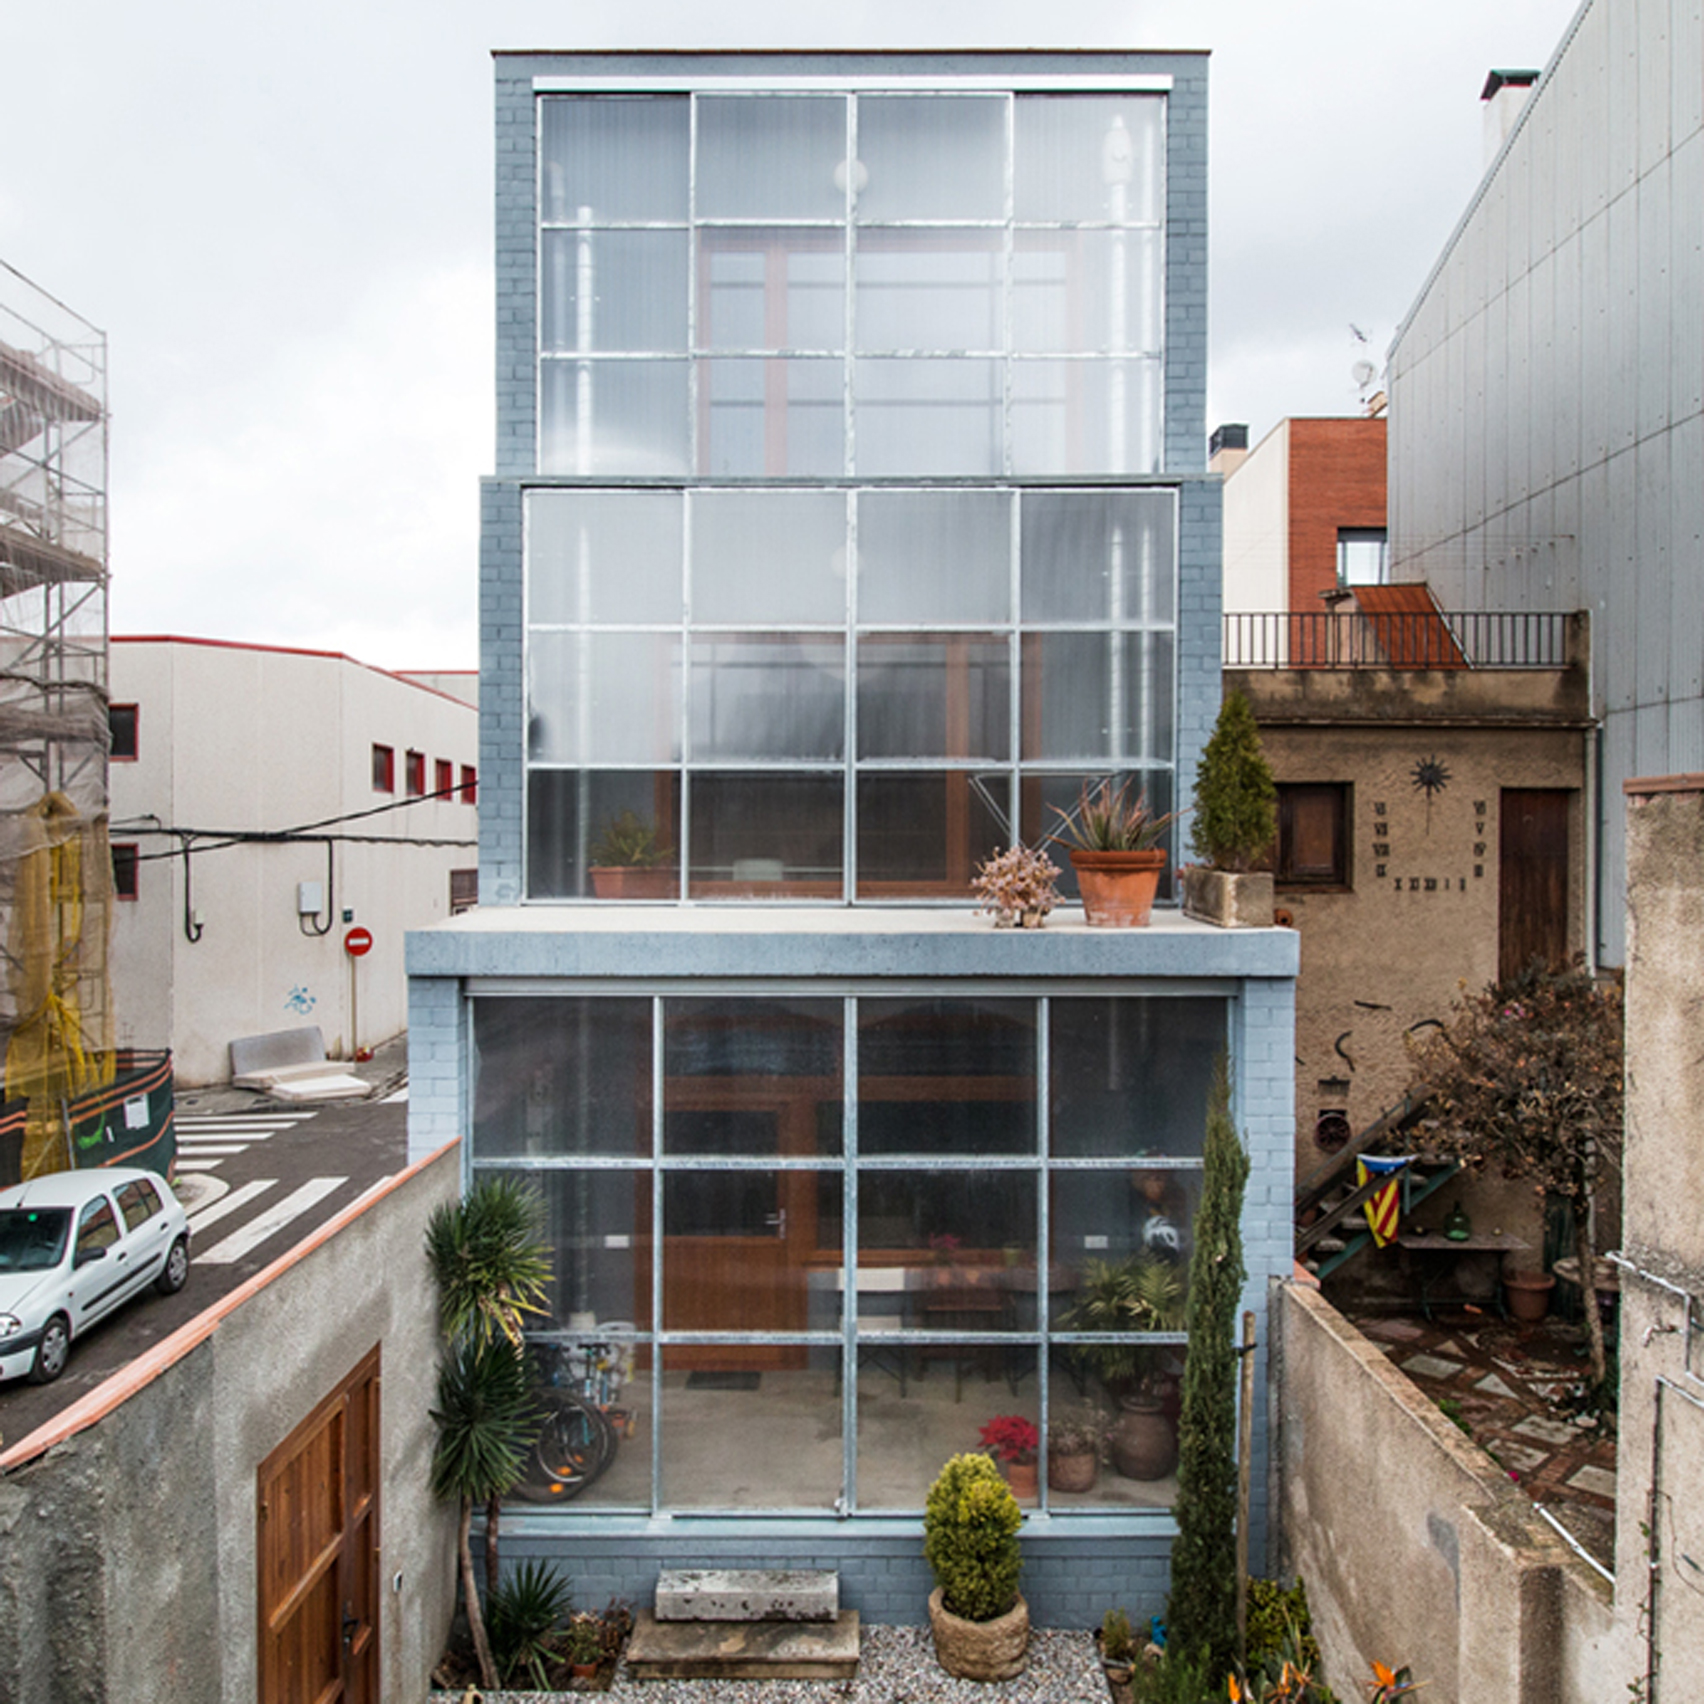 Sliding polycarbonate panels open up facade of catalonian house by h arquitectes